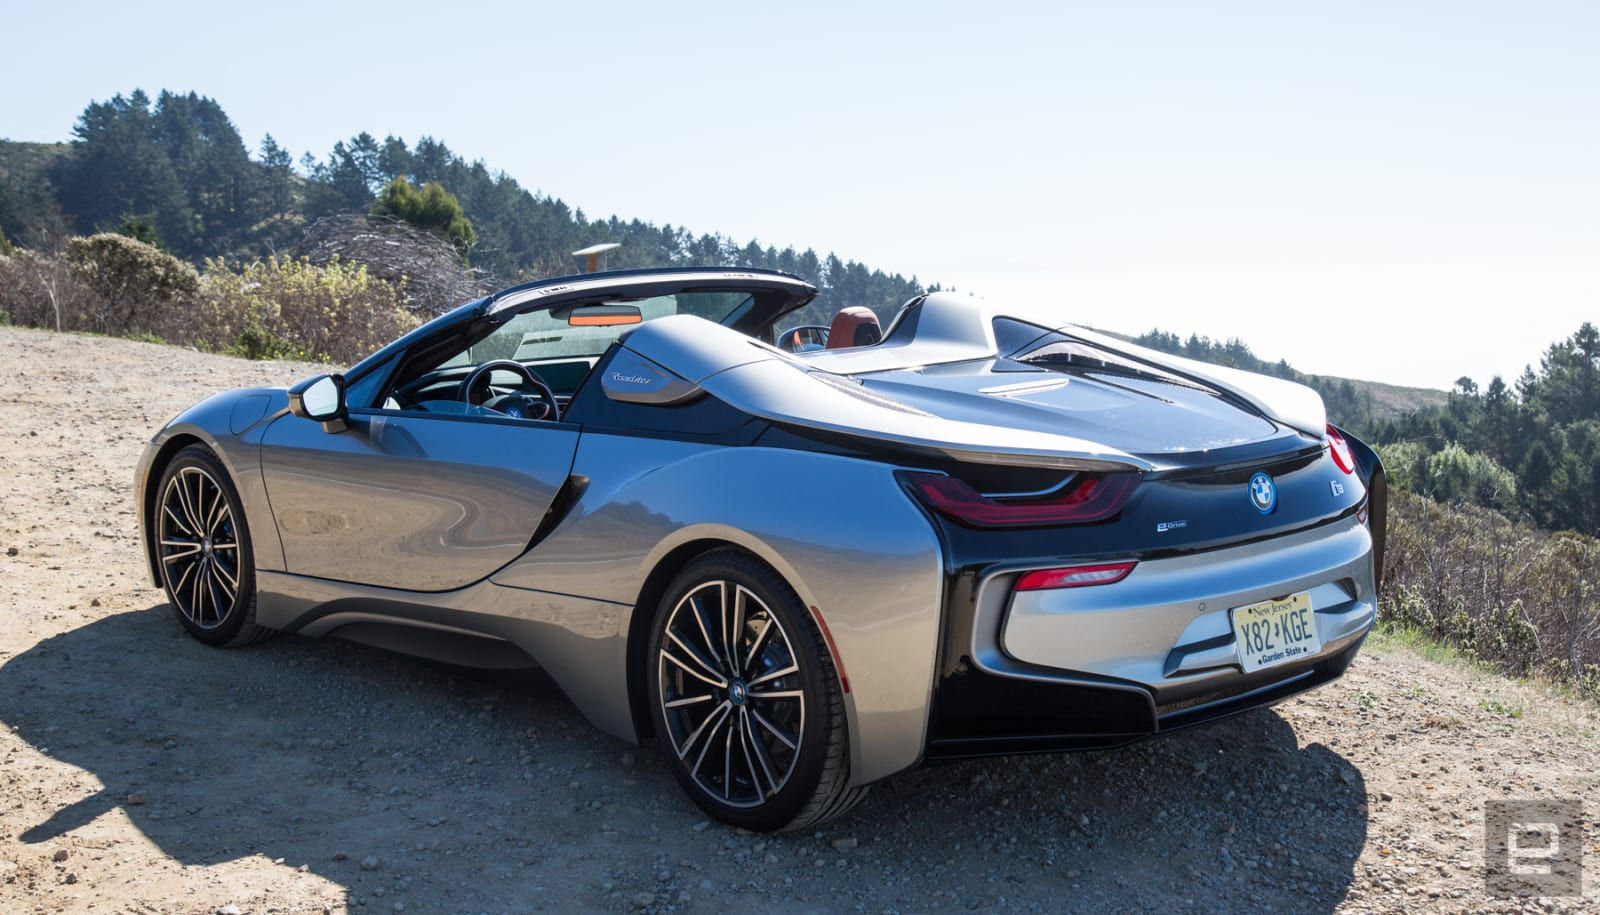 Bmw S I8 Roadster Is A Daily Driver In Supercar S Clothing Engadget